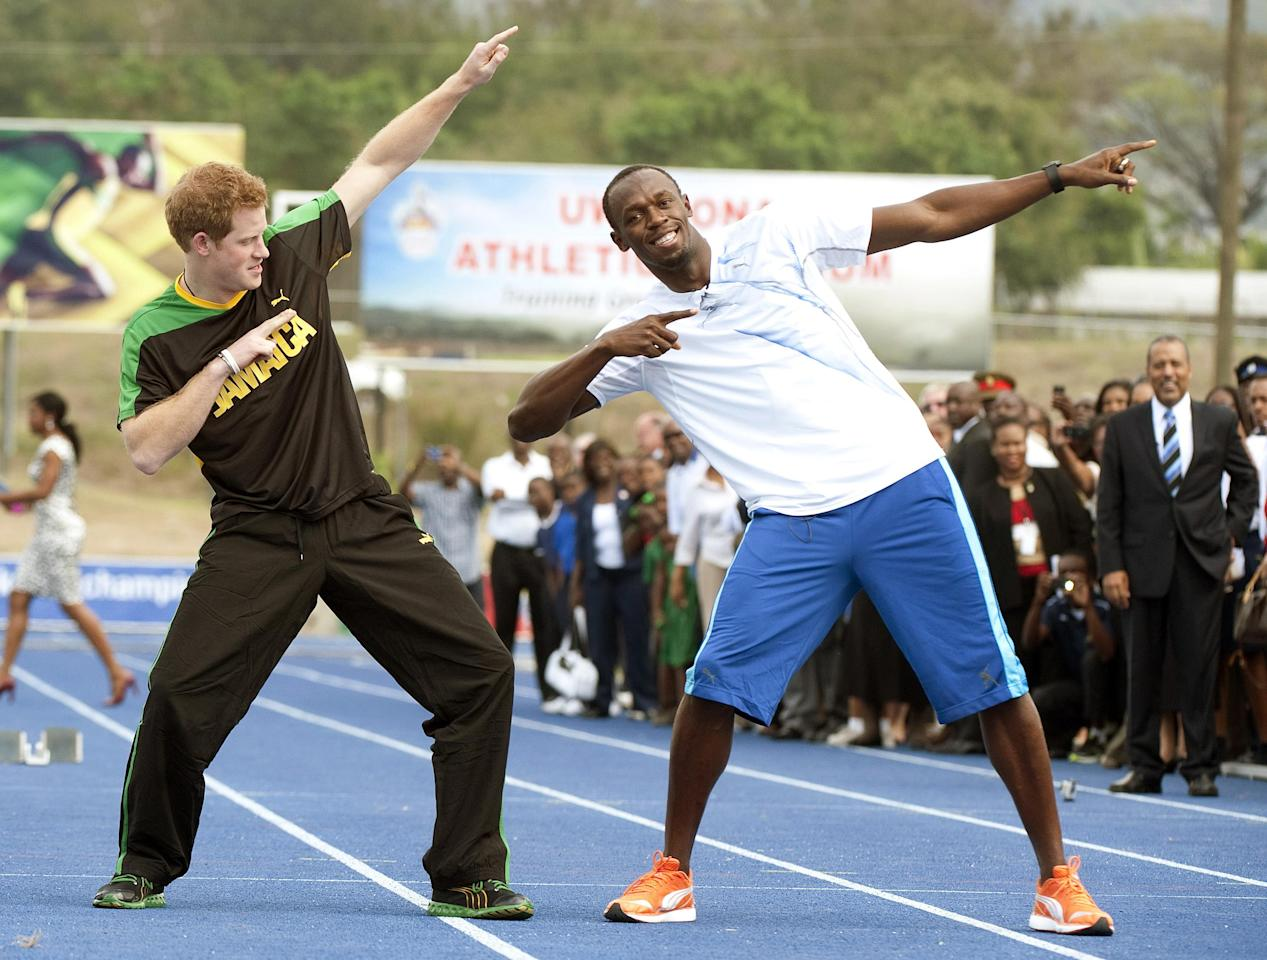 Britain's Prince Harry follows the signature victory gesture of Olympic sprint champion Usain Bolt, Tuesday March 6 2012 following a mock race at the University of the West Indies, in Jamaica. Harry is touring the Caribbean as part of a Diamond Jubilee tour in honor of Queen Elizabeth II as she celebrates 60 years on the throne. His visit comes as the new prime minister, Portia Simpson Miller, has called anew for the severing of ties with the British monarchy. (AP PhotoJohn Stillwell/PA) UNITED KINGDOM OUT NO SALES NO ARCHIVE